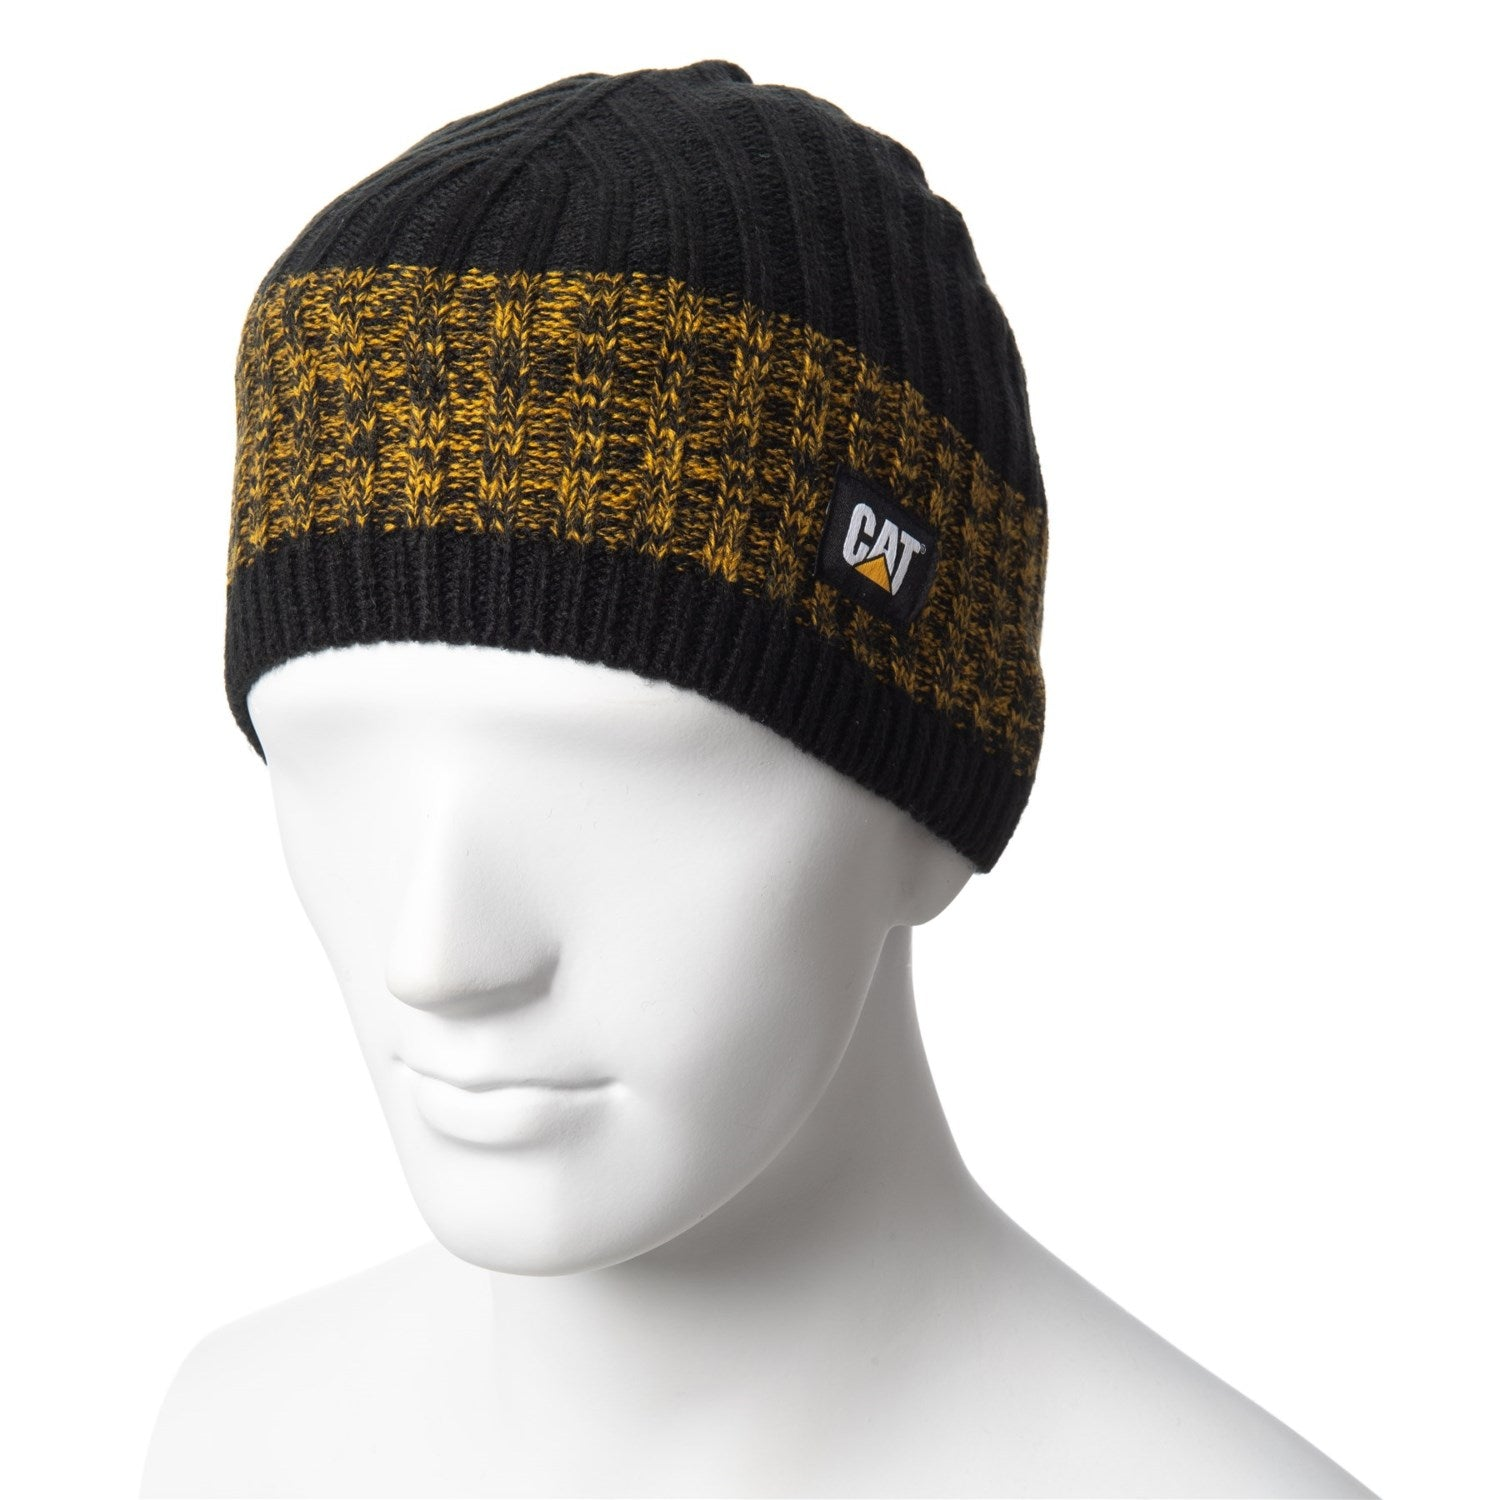 Caterpillar CAT Squall Logo Warm Snowboard Ski Beanie Black - Yellow